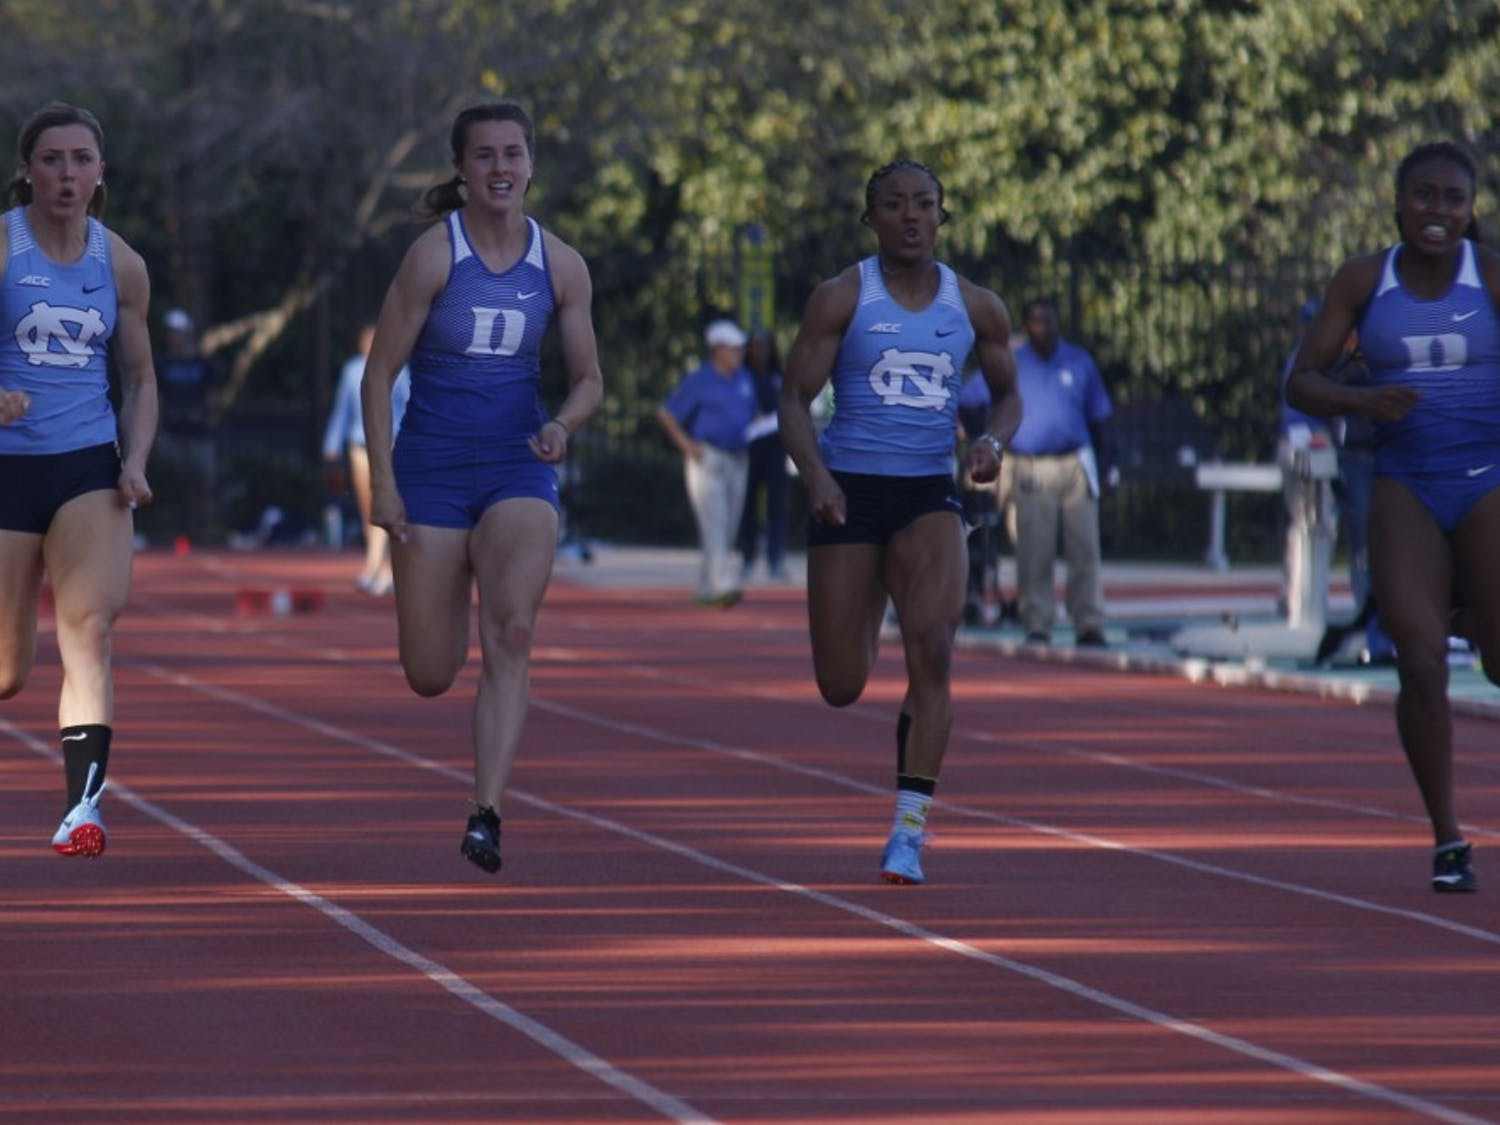 The UNC track and field team competed against Duke on Saturday, April 6, 2019, at Duke University.